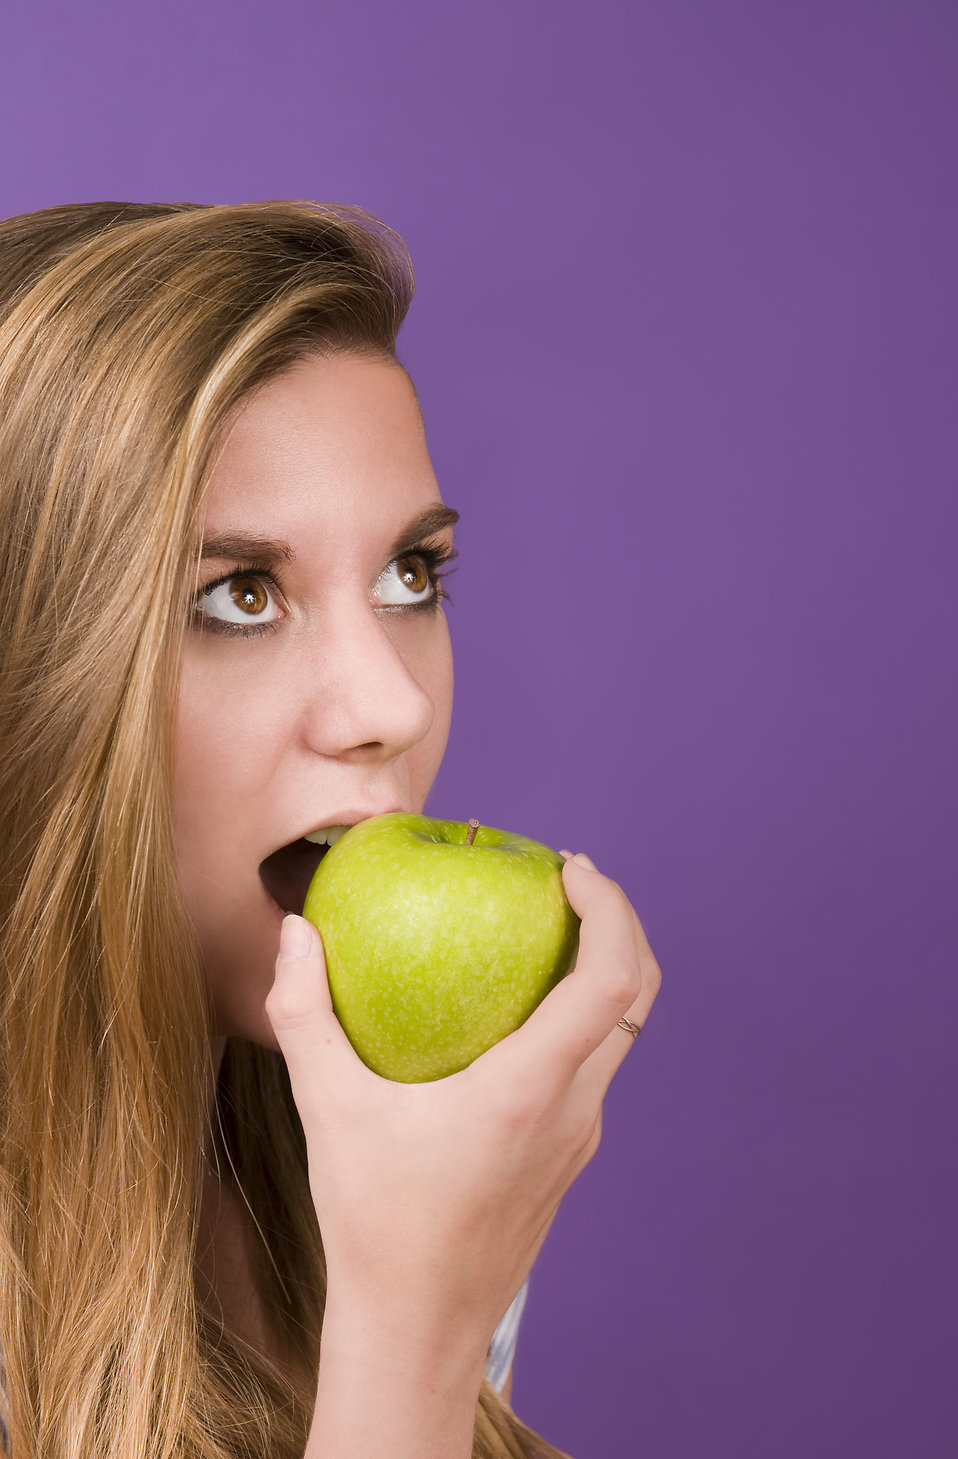 A young woman about to bite into a green apple : Free Stock Photo